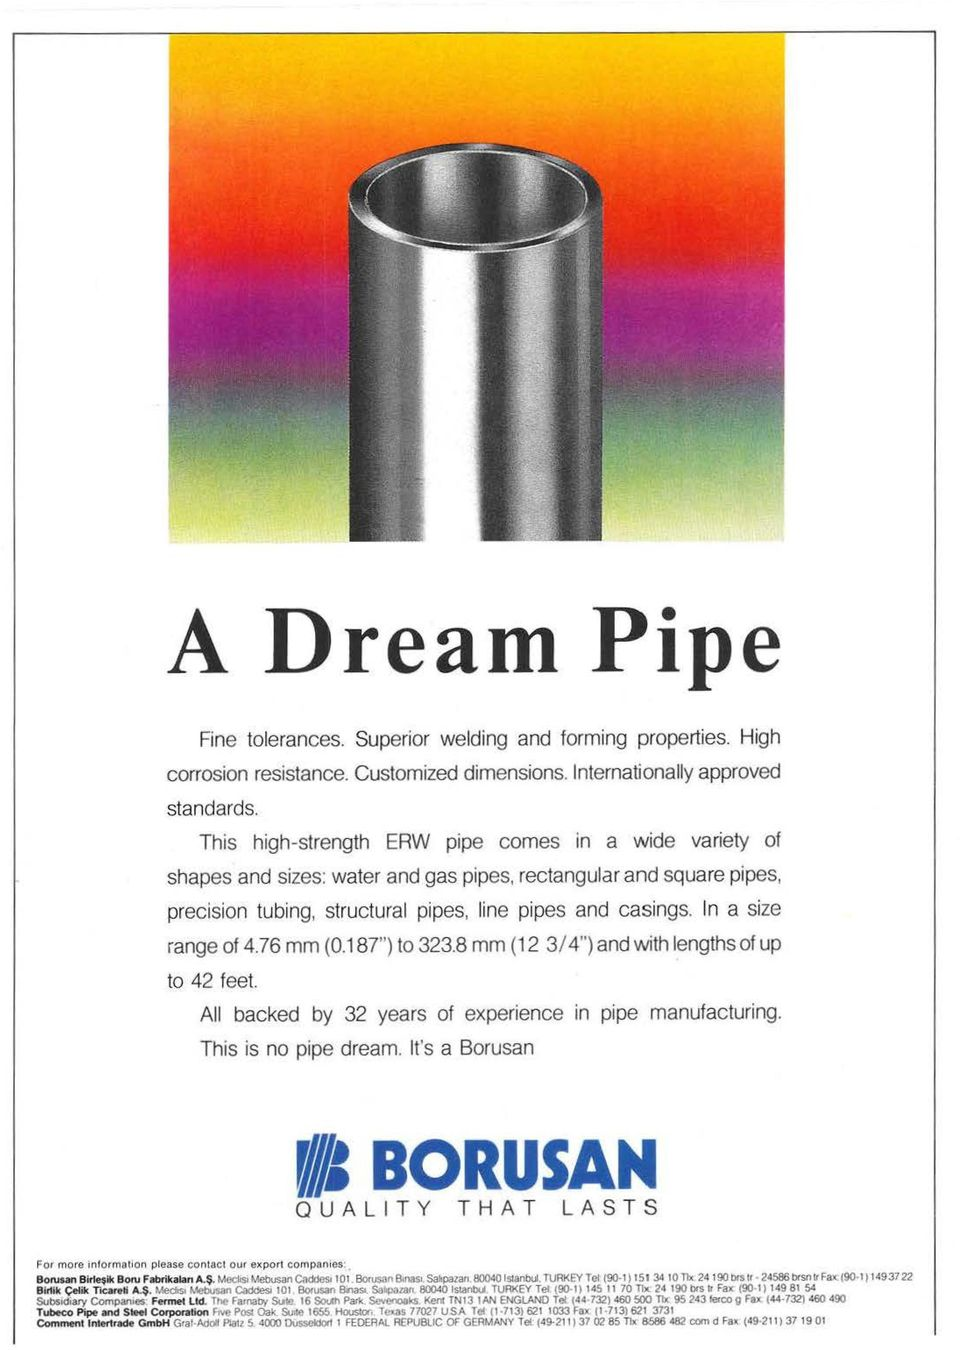 "In a size range of 4.76 mm (0.187"") to 323.8 mm (12 3/ 4"") and with lengths of up to 42 feet. All backed by 32 years of experience in pipe manufacturing. This is no pipe dream."